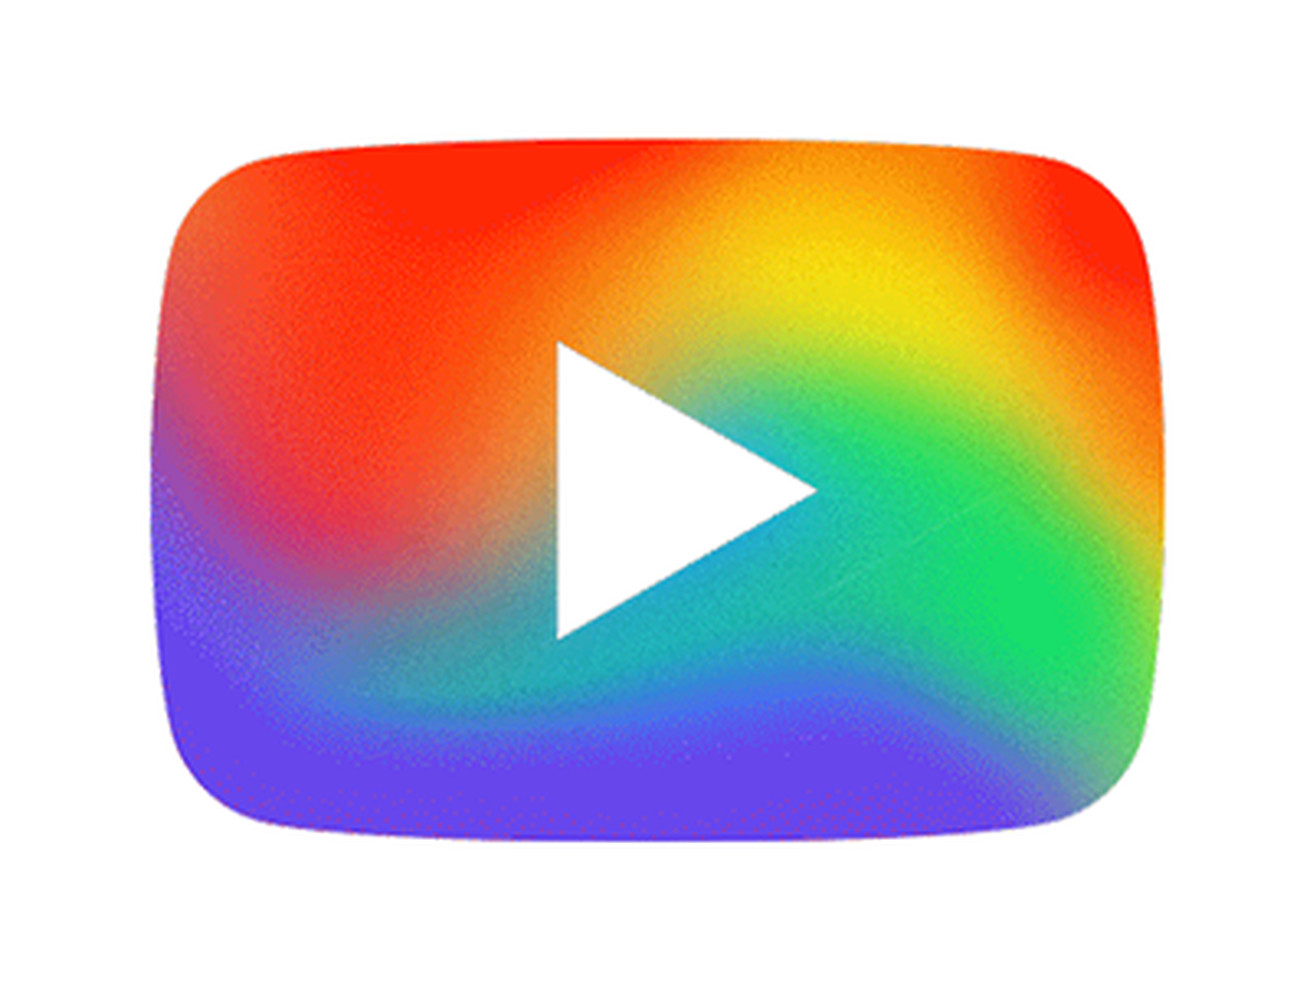 YouTube updated its social media icon for Pride month — just in time to tell queer users that homophobic hate speech may be okay.